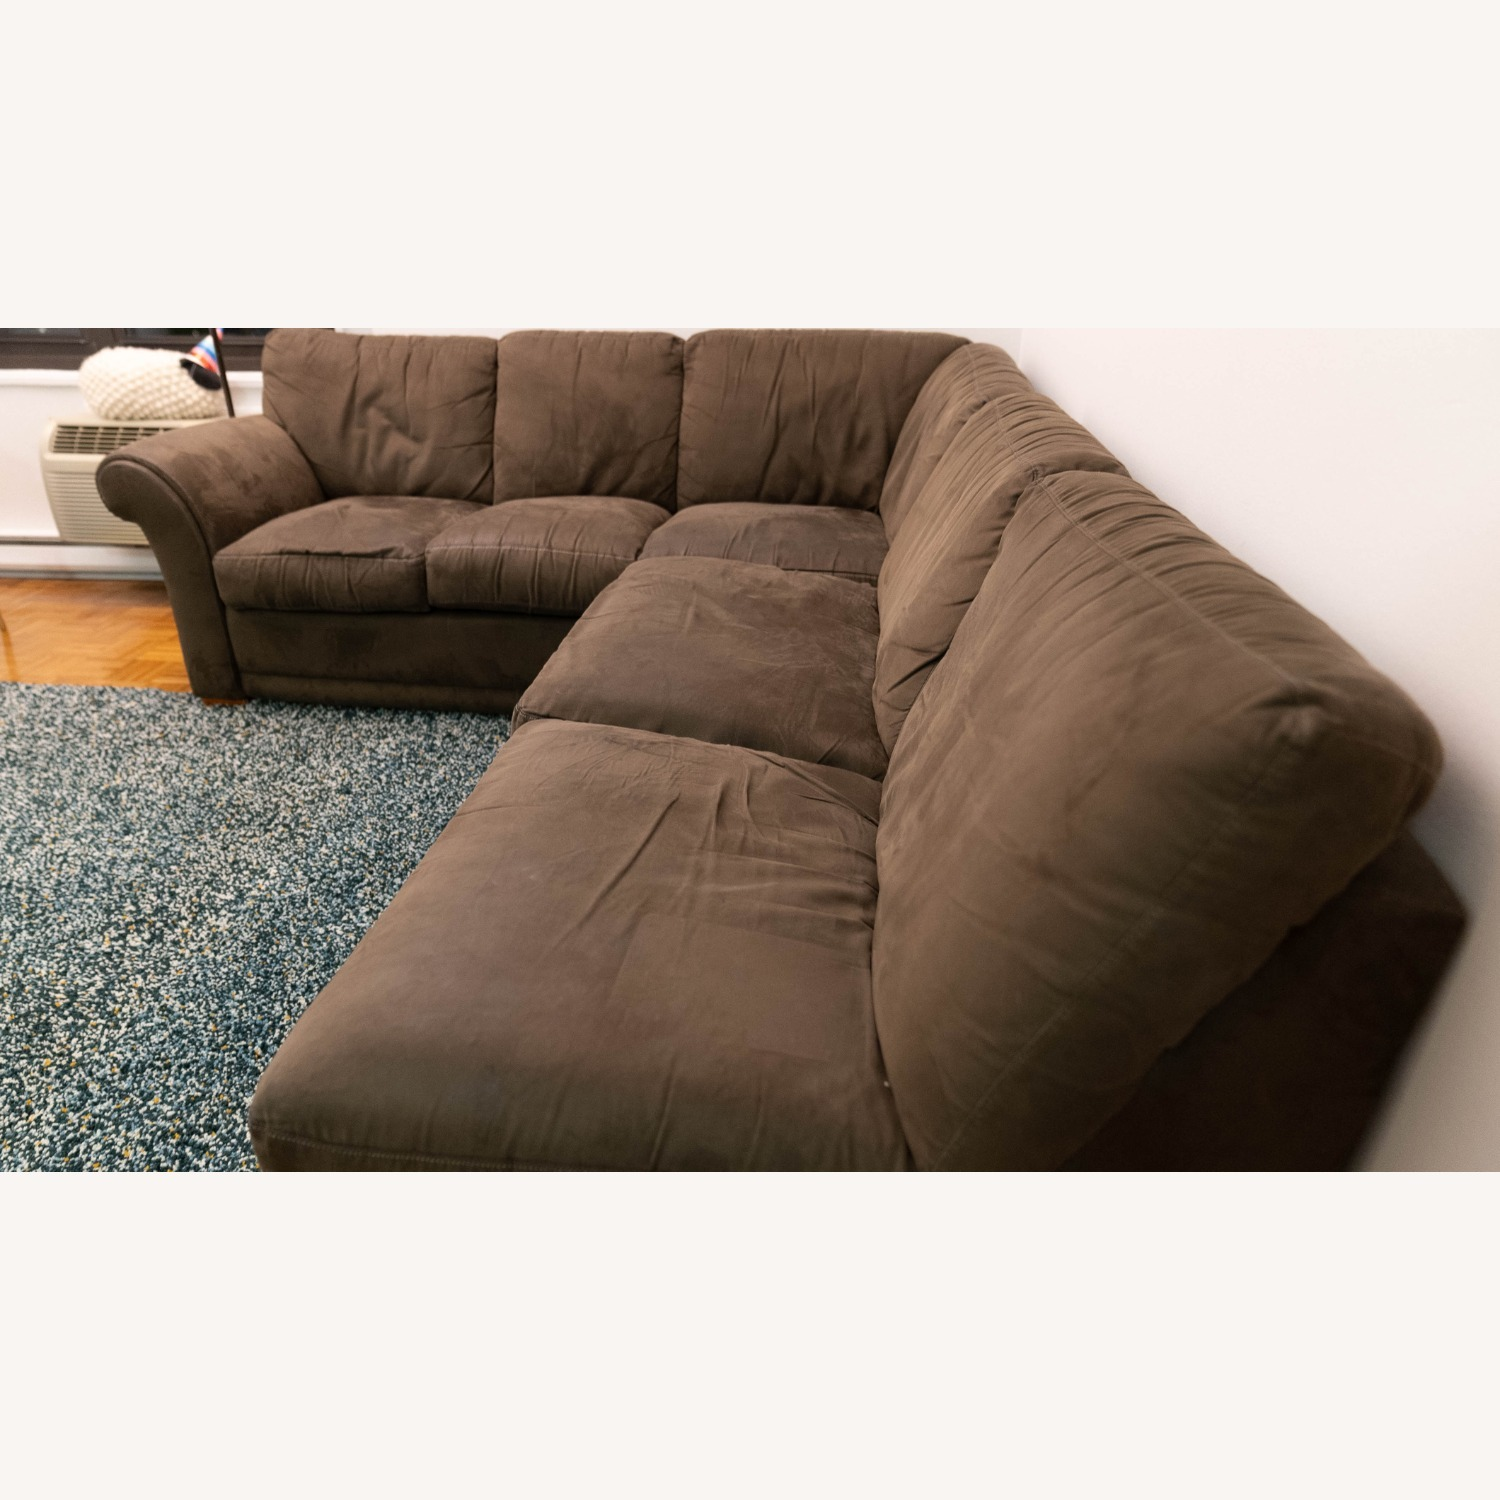 Super Comfortable Sectional Couch - image-2